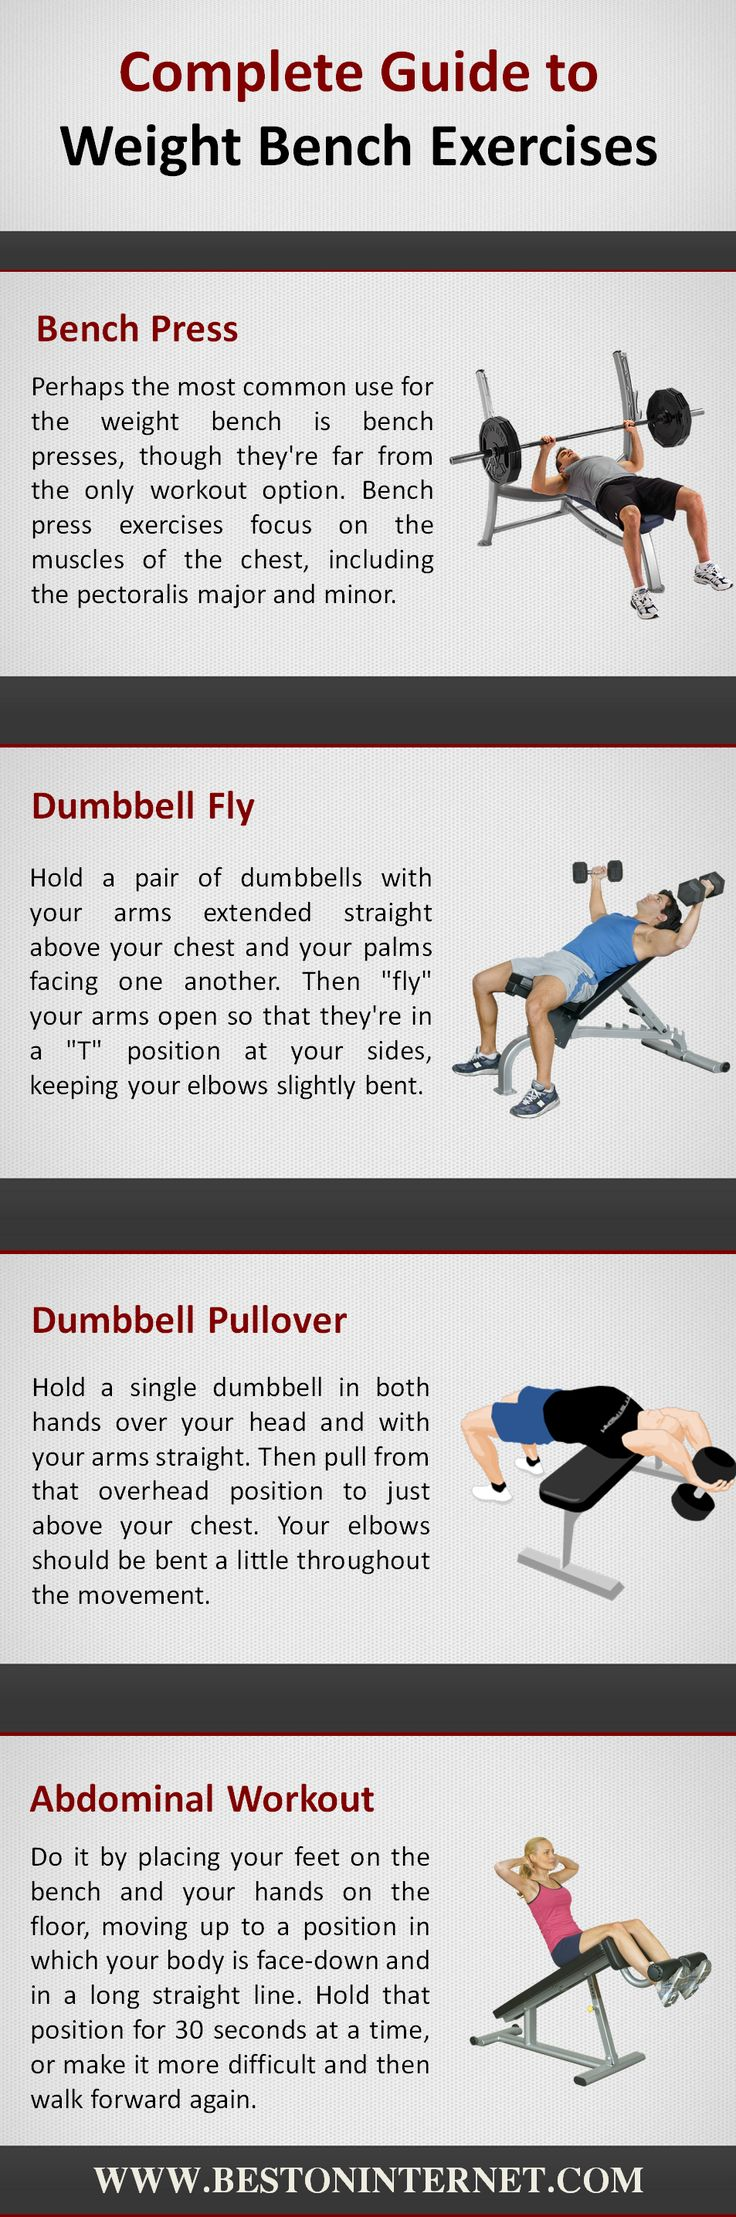 Complete Guide to Weight Bench Exercises  http://www.bestoninternet.com/sports-and-fitness/exercise-fitness-equipment/adjustable-workout-weight-bench/  If you want to do weight exercises, then you can use weight benches. I have listed the types of exercises that you can do with the adjustable #weightbenches.